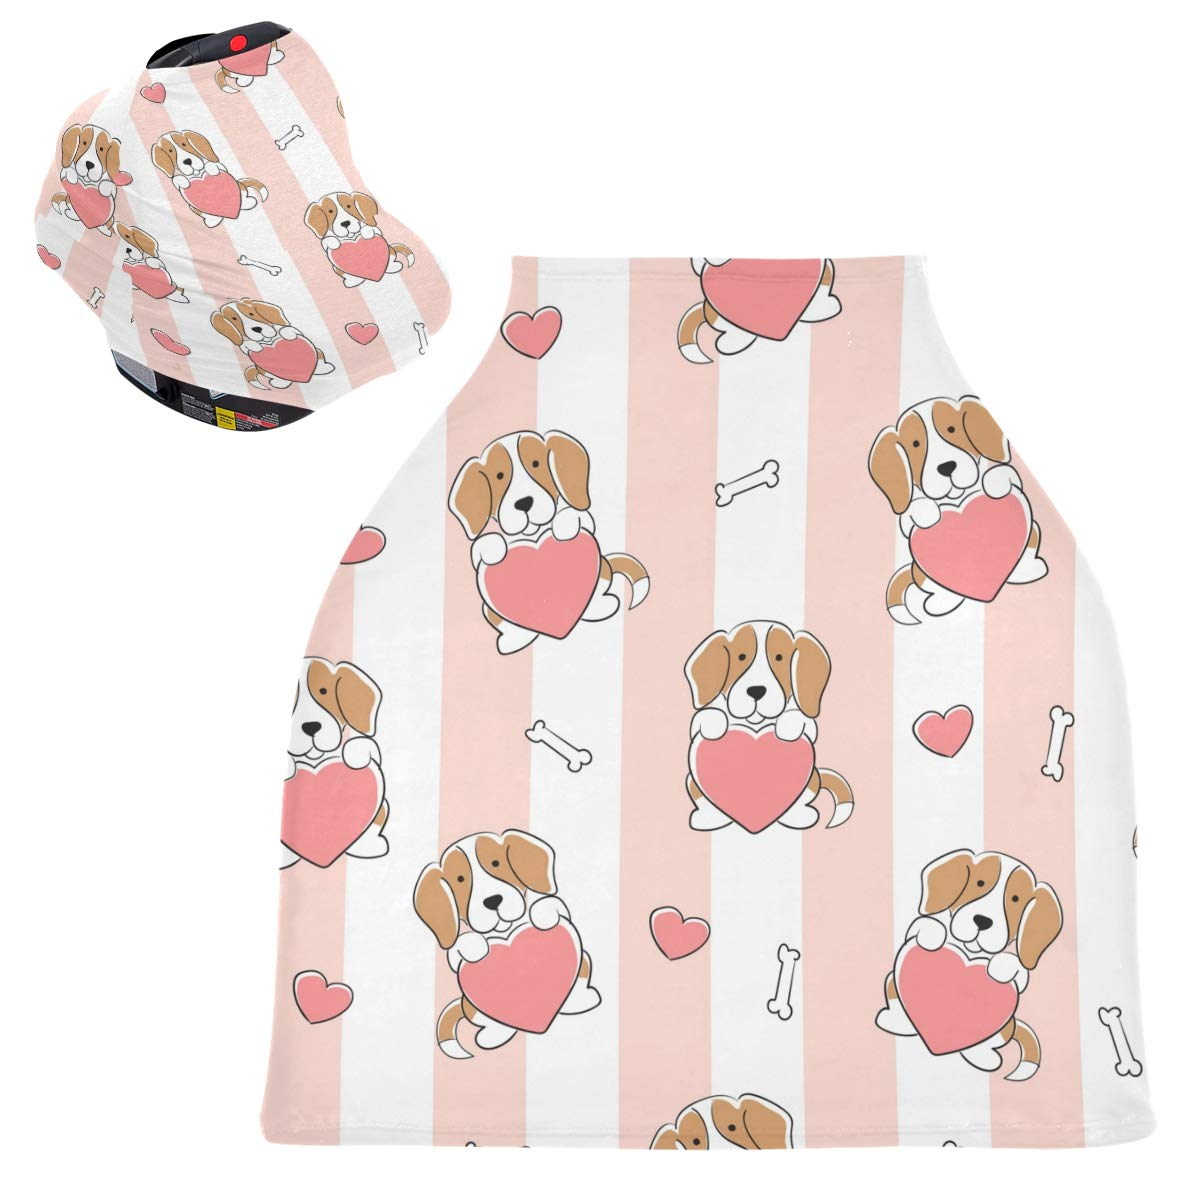 Stretchy Baby Car Seat Canopy - Beagle Hug Hearts Infant Stroller Cover Multi Use Carseat Canopy Cover Nursing Cover for Boy